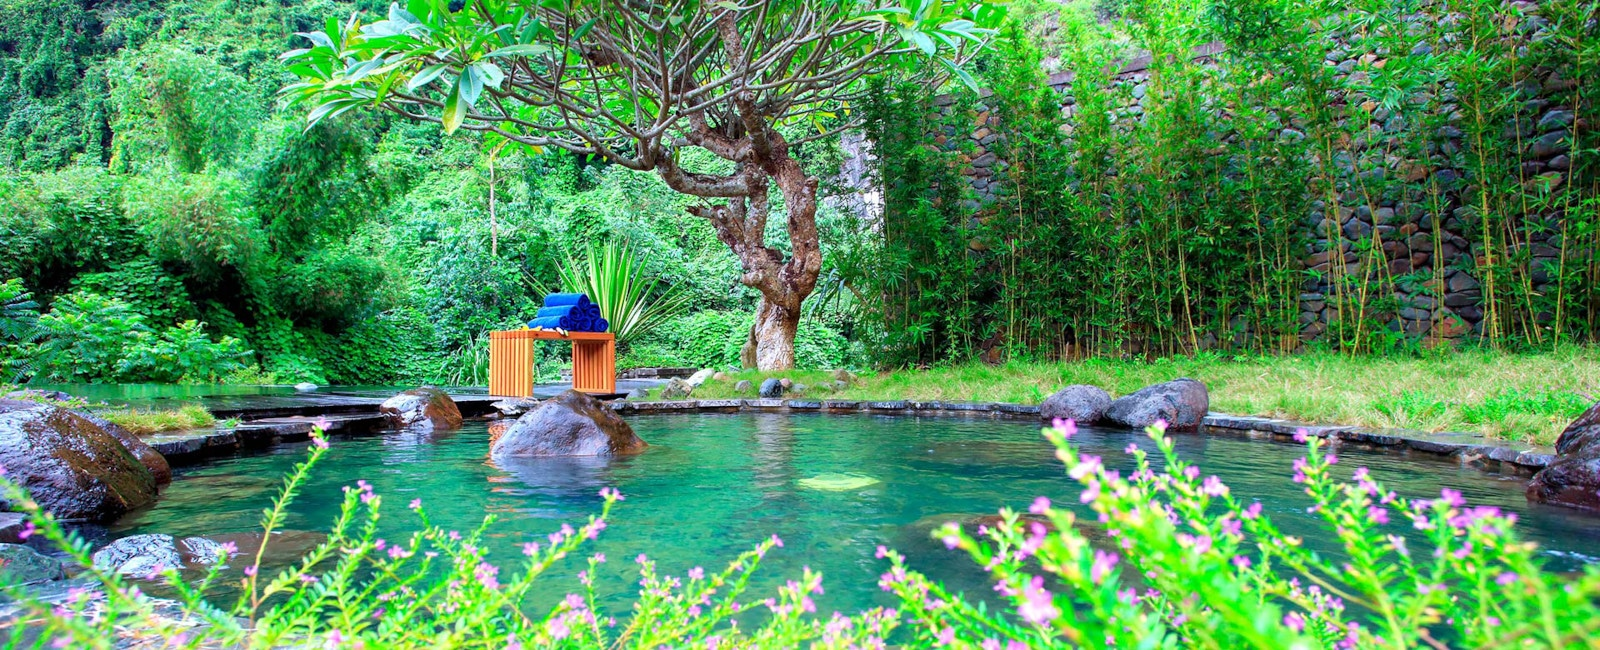 Image of an outdoor hot spring bath at the Serena Resort Kim Boi in Vietnam